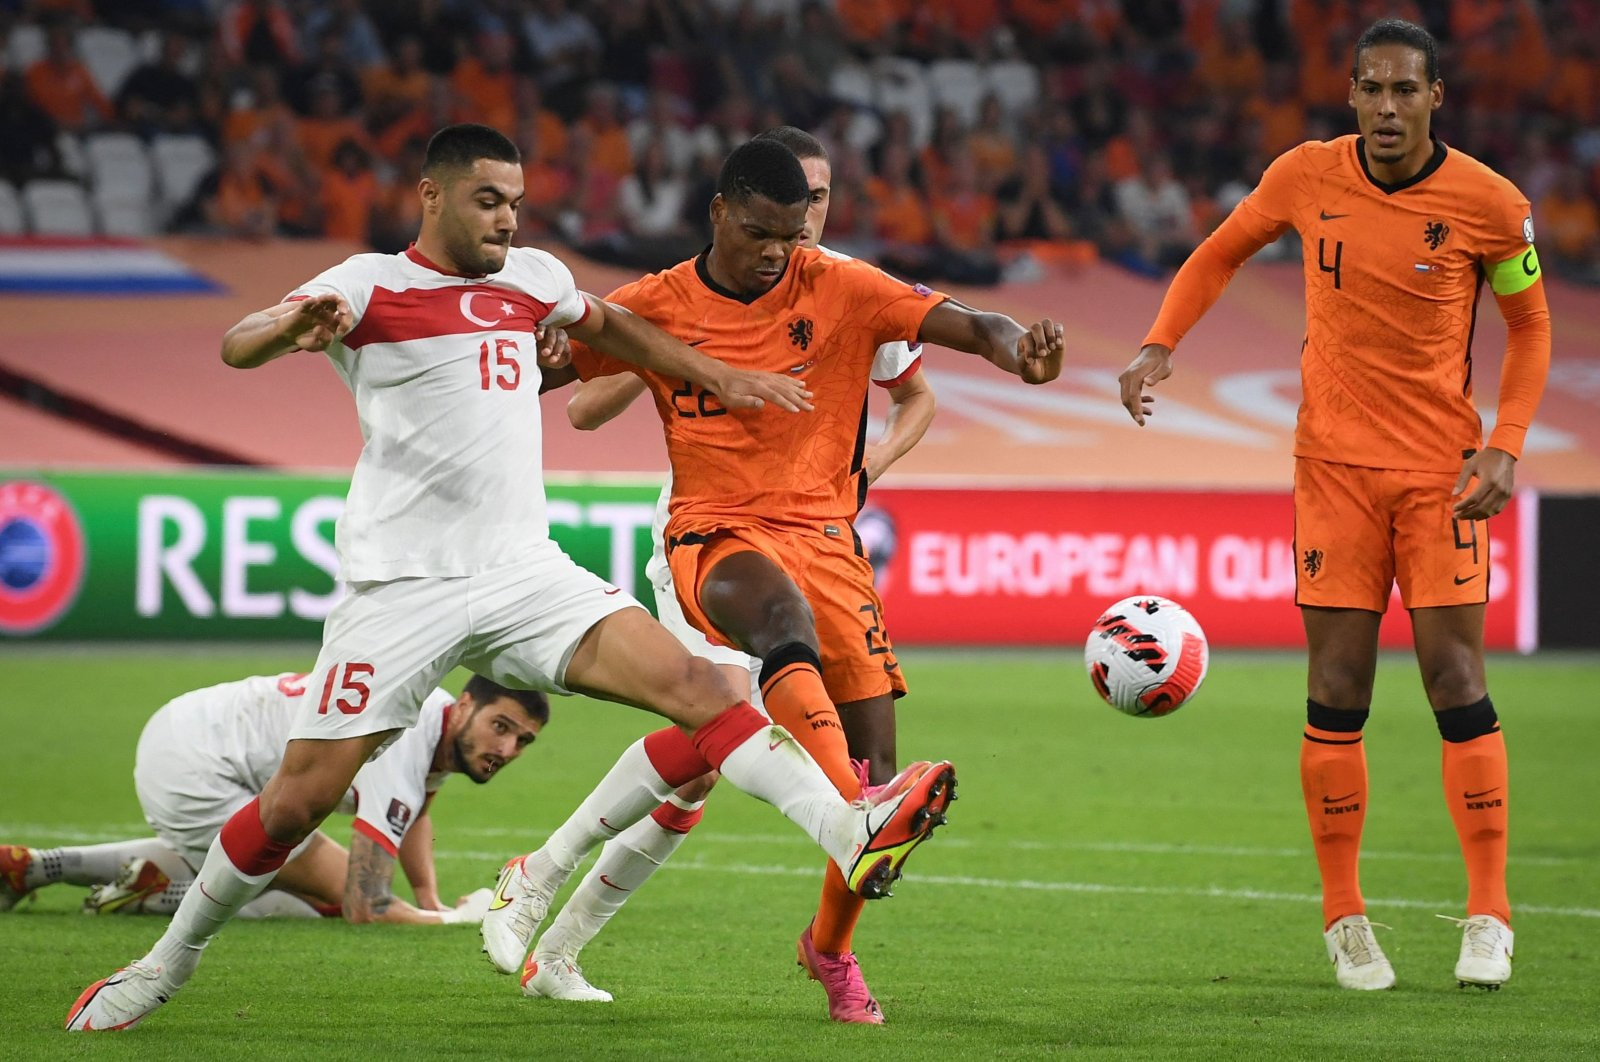 Turkey's defender Ozan Kabak (L) fights for the ball with Netherlands' defender Denzel Dumfries (C) during the FIFA World Cup Qatar 2022 qualifying round Group G football match between The Netherlands and Turkey at the Johan Cruijff Arena stadium in Amsterdam, the Netherlands, on Sept. 7, 2021. (AFP Photo)